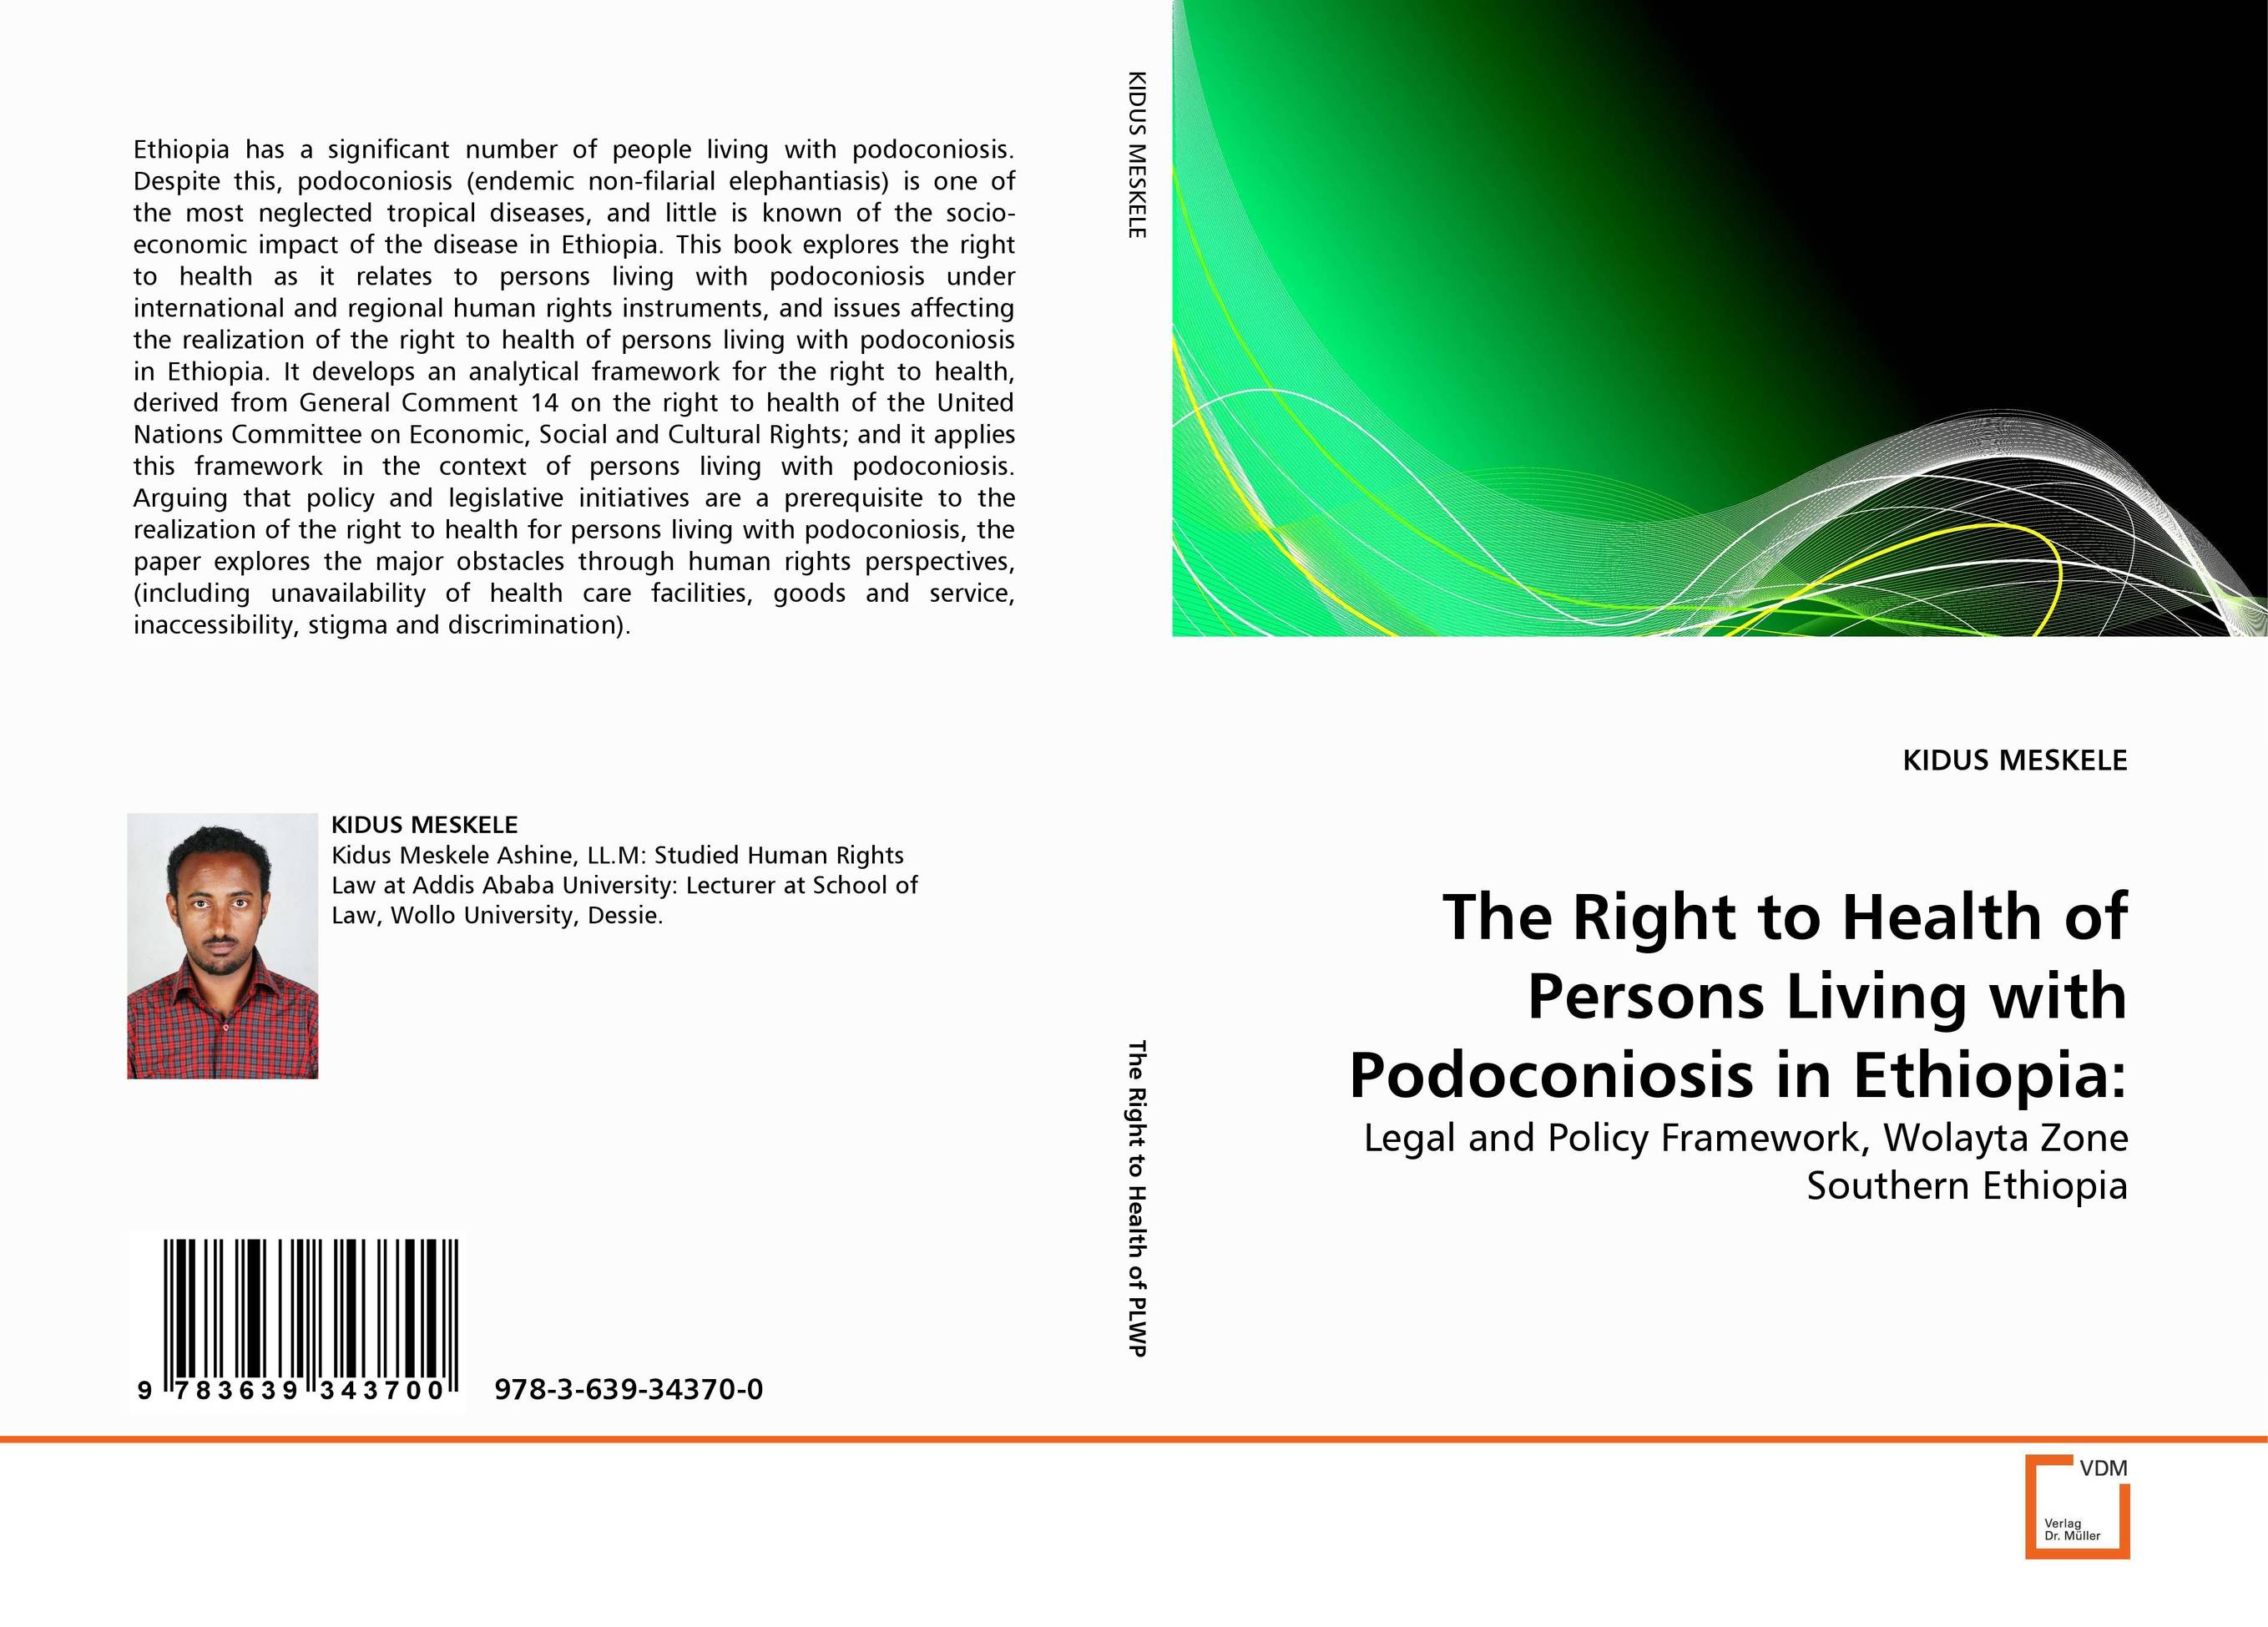 The Right to Health of Persons Living with Podoconiosis in Ethiopia: